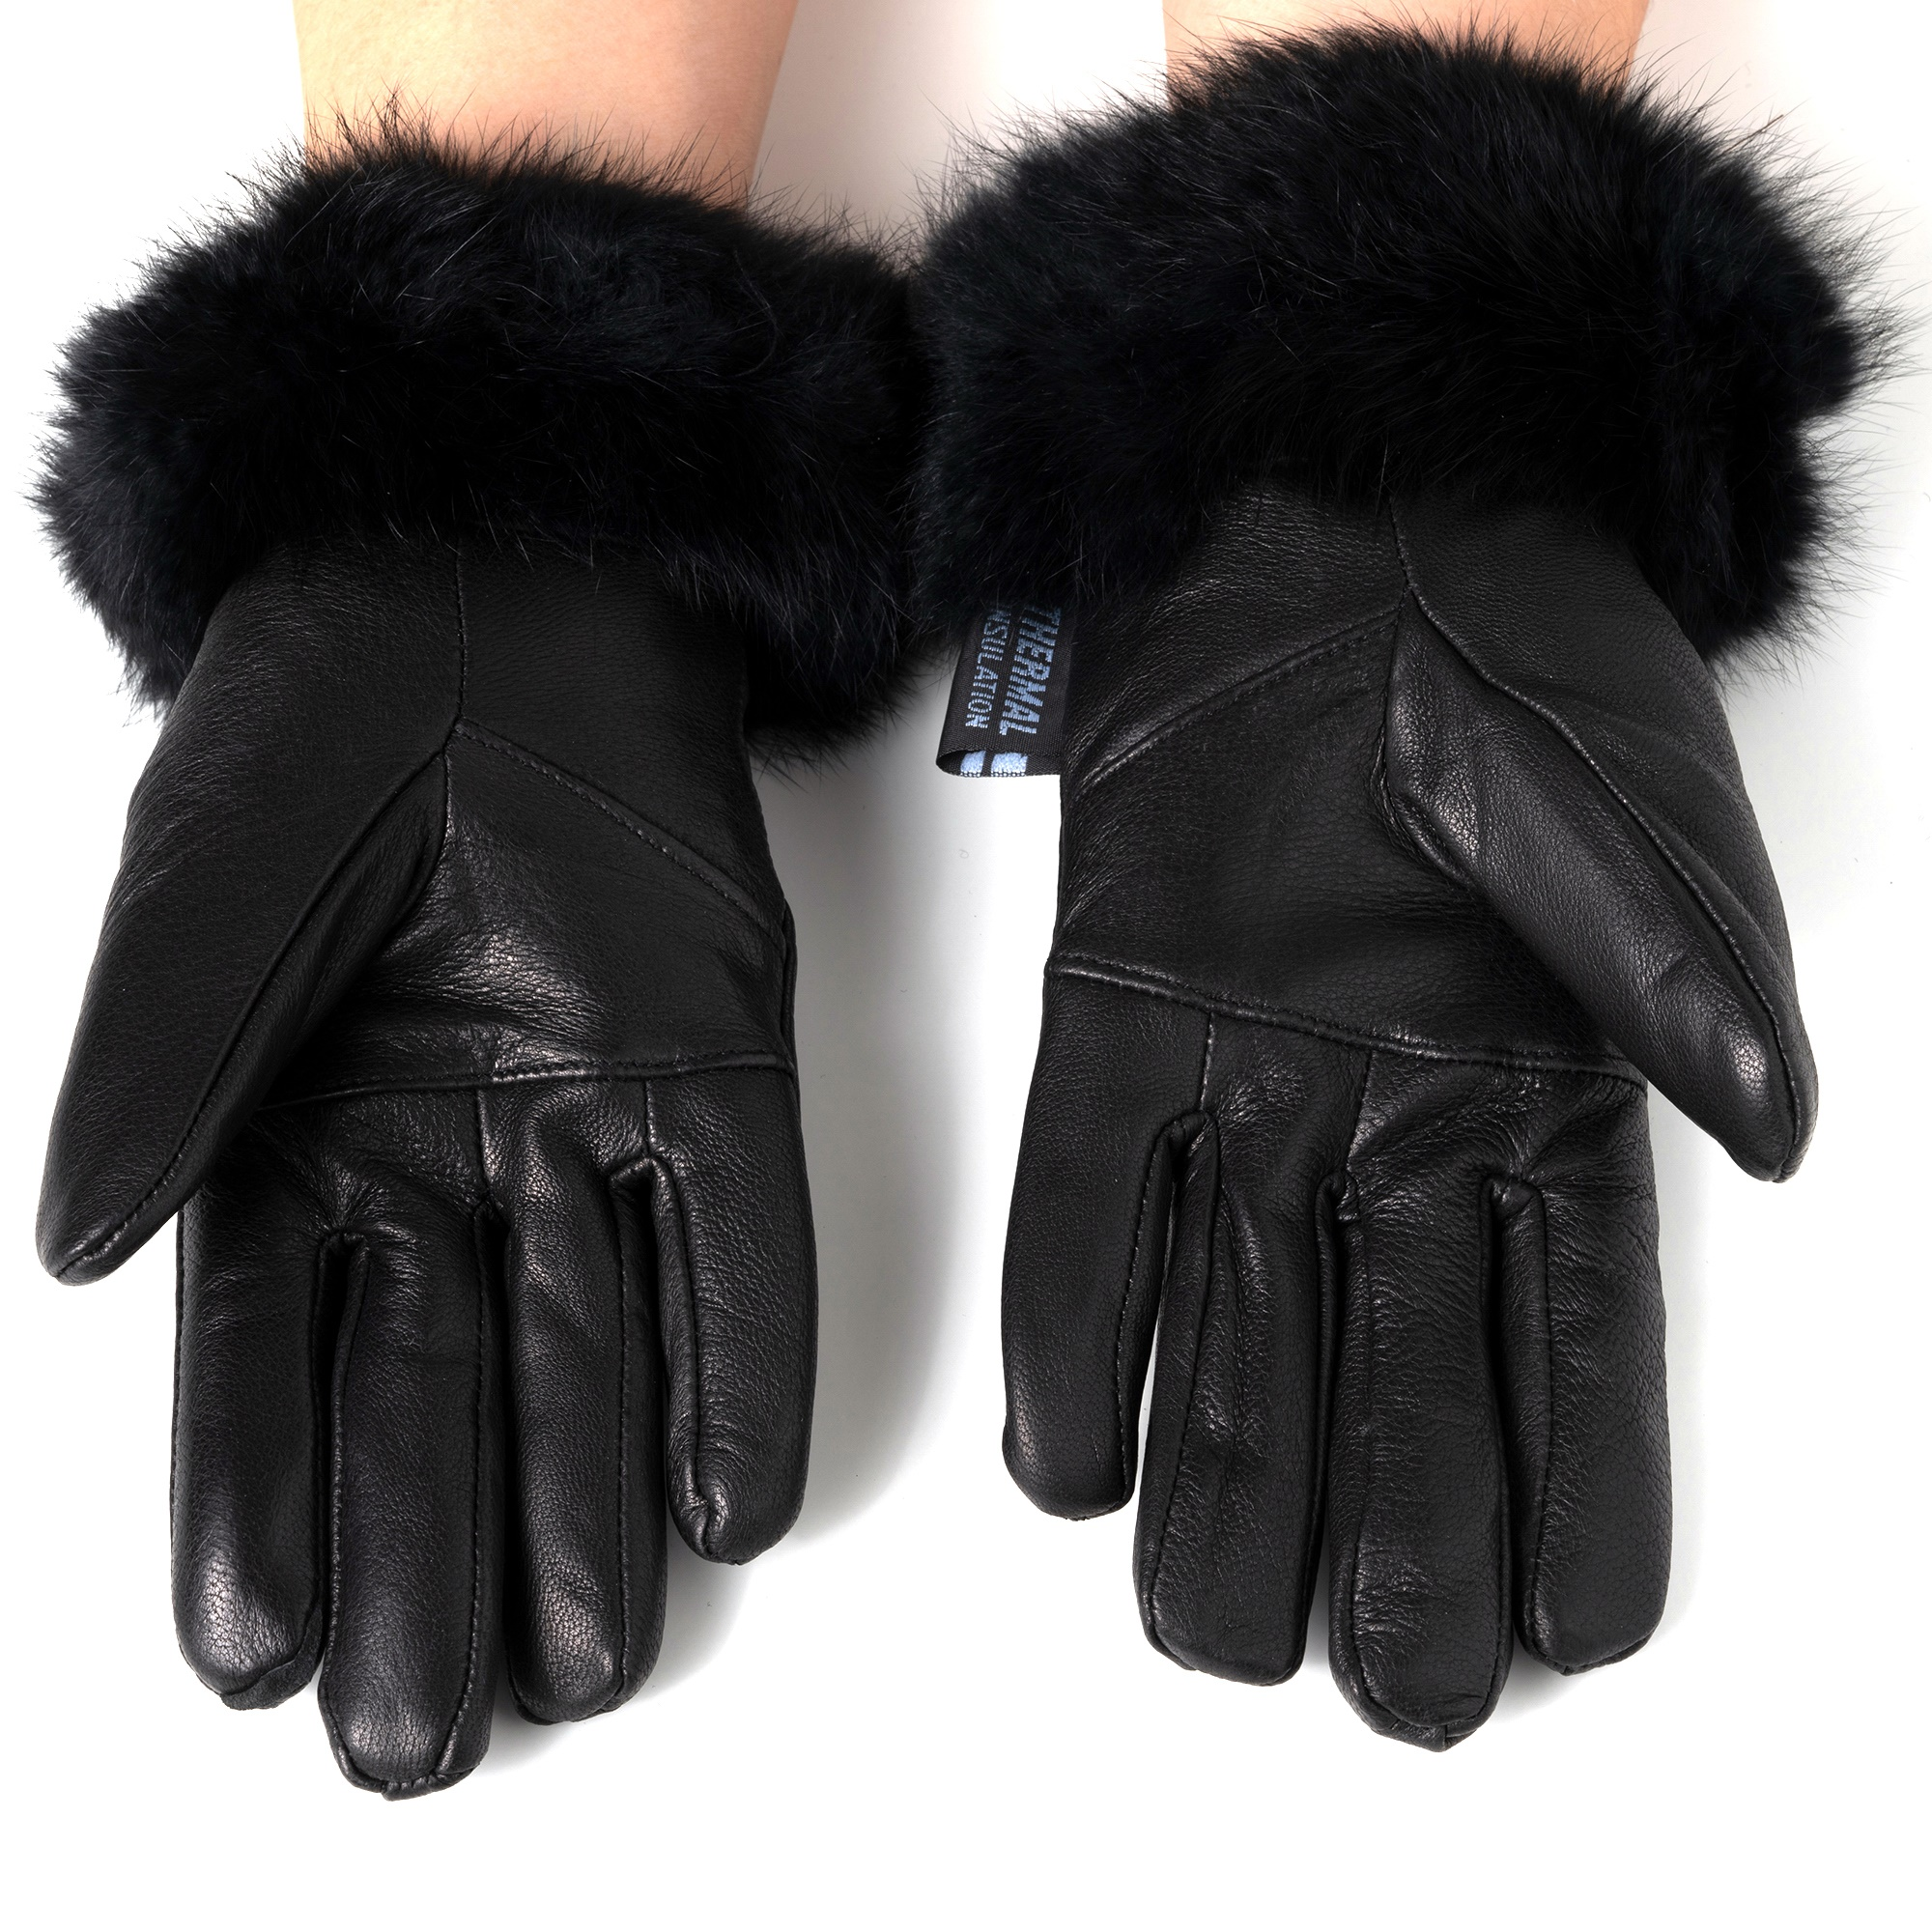 Alpine-Swiss-Womens-Dressy-Gloves-Genuine-Leather-Thermal-Lining-Fur-Trim-Cuff thumbnail 15